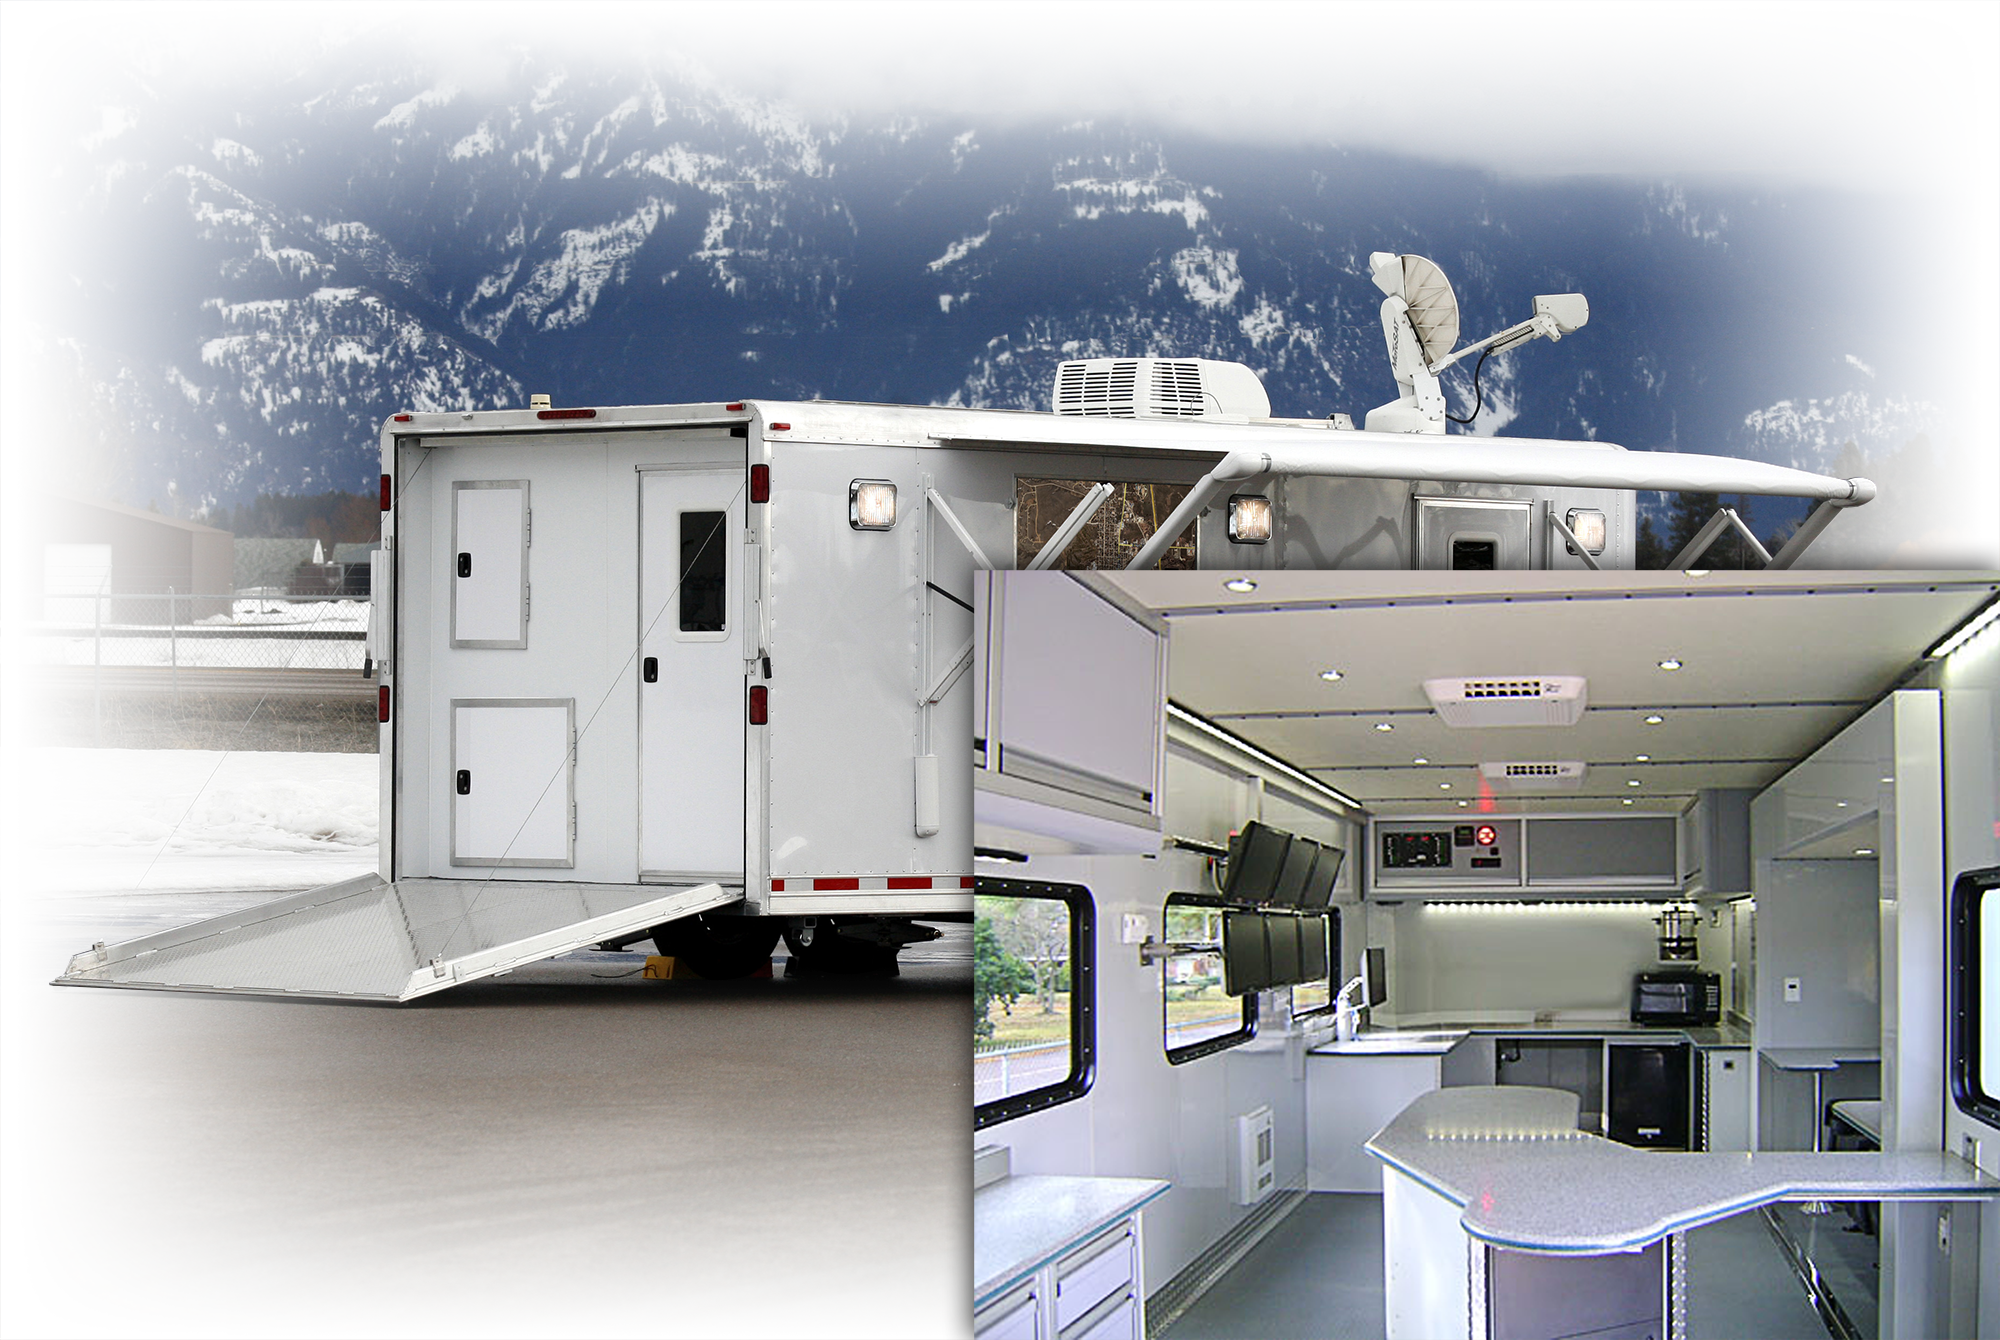 Mobile Command Station